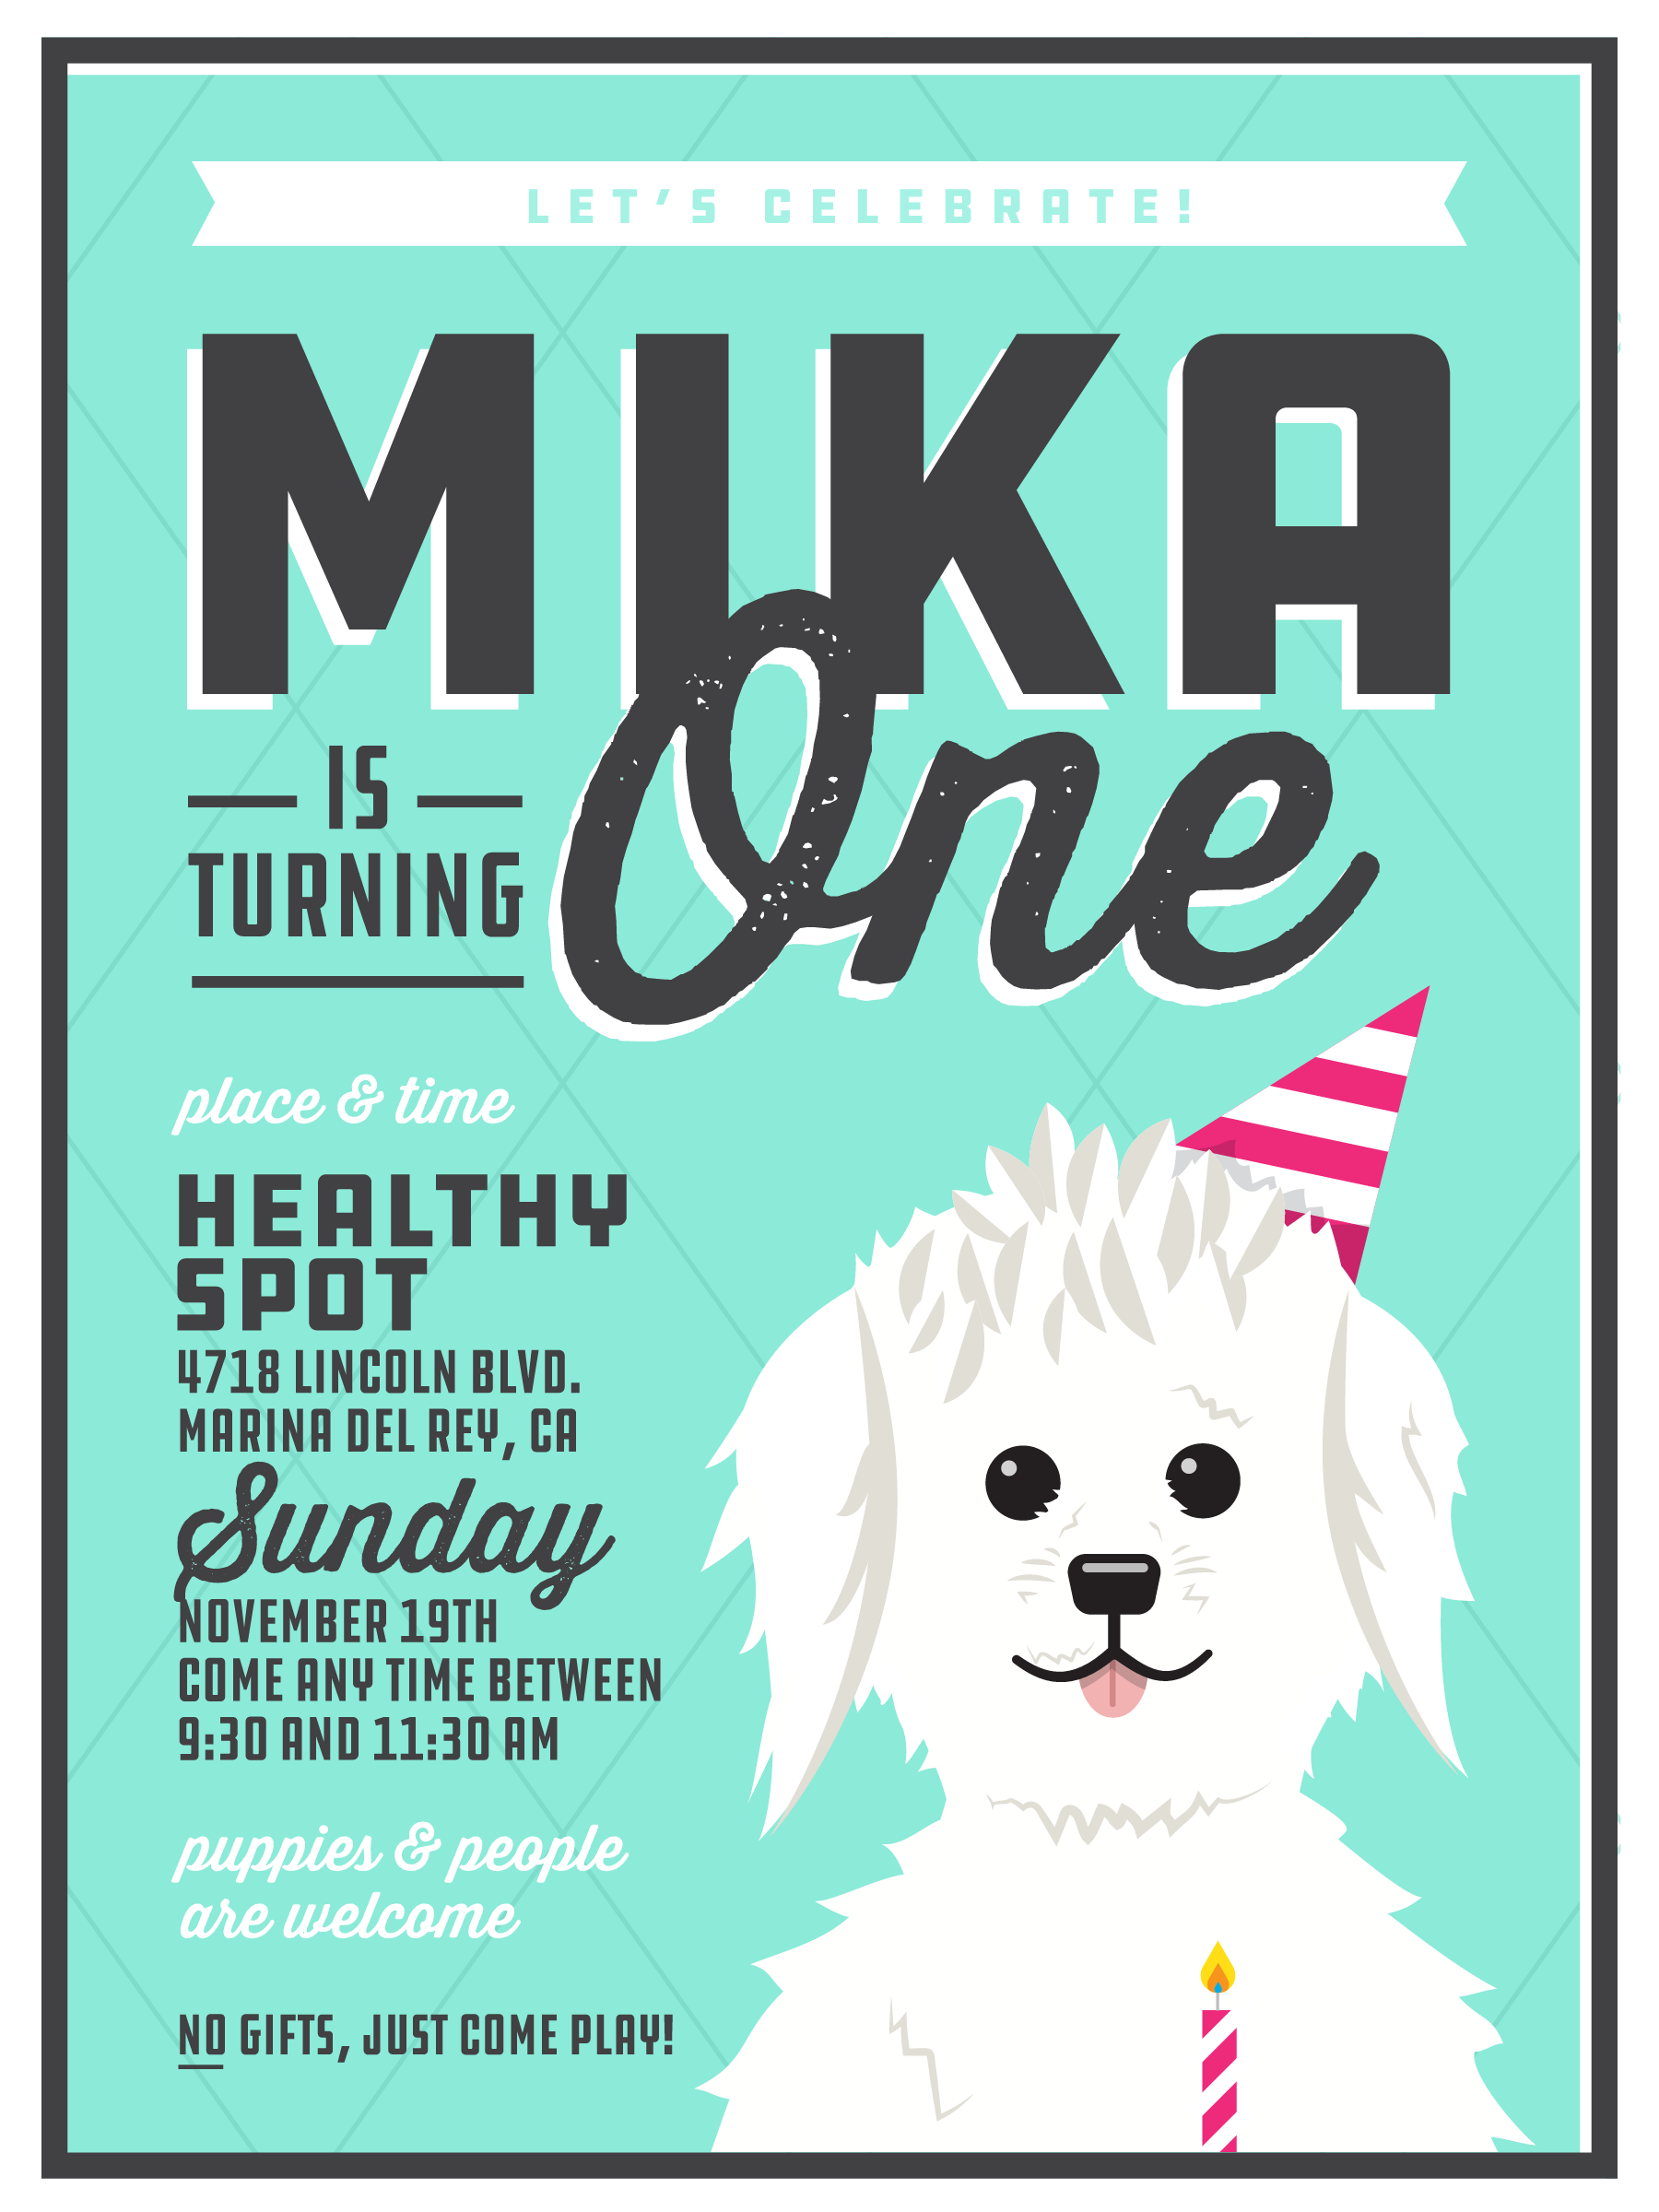 mika_first_bday-01